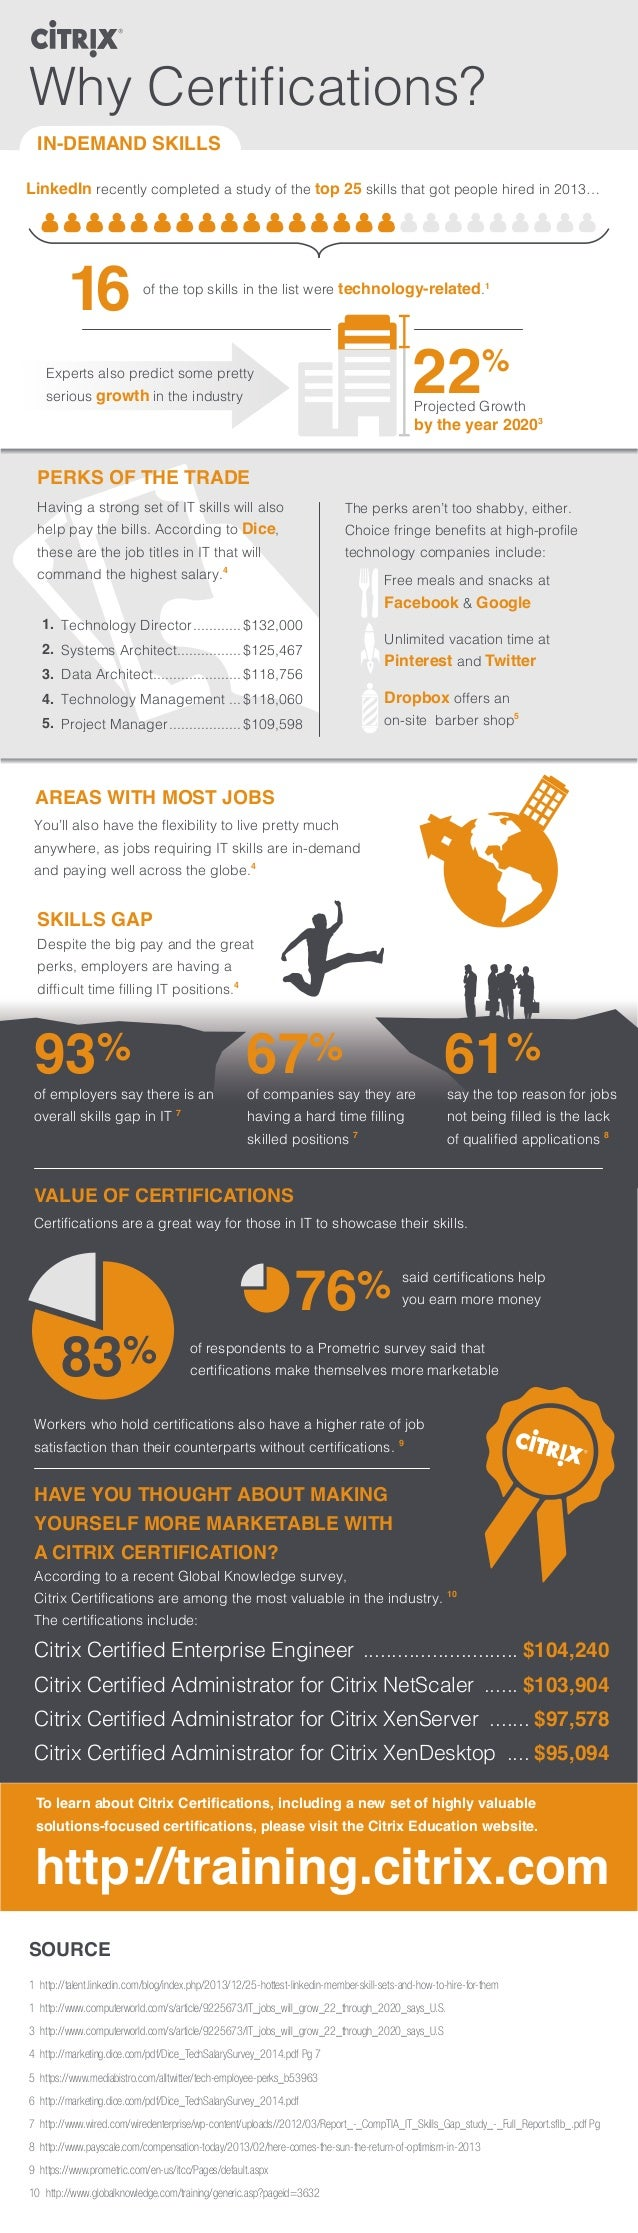 Why Certifications? IN-DEMAND SKILLS PERKS OF THE TRADE AREAS WITH MOST JOBS SKILLS GAP LinkedIn recently completed a stud...